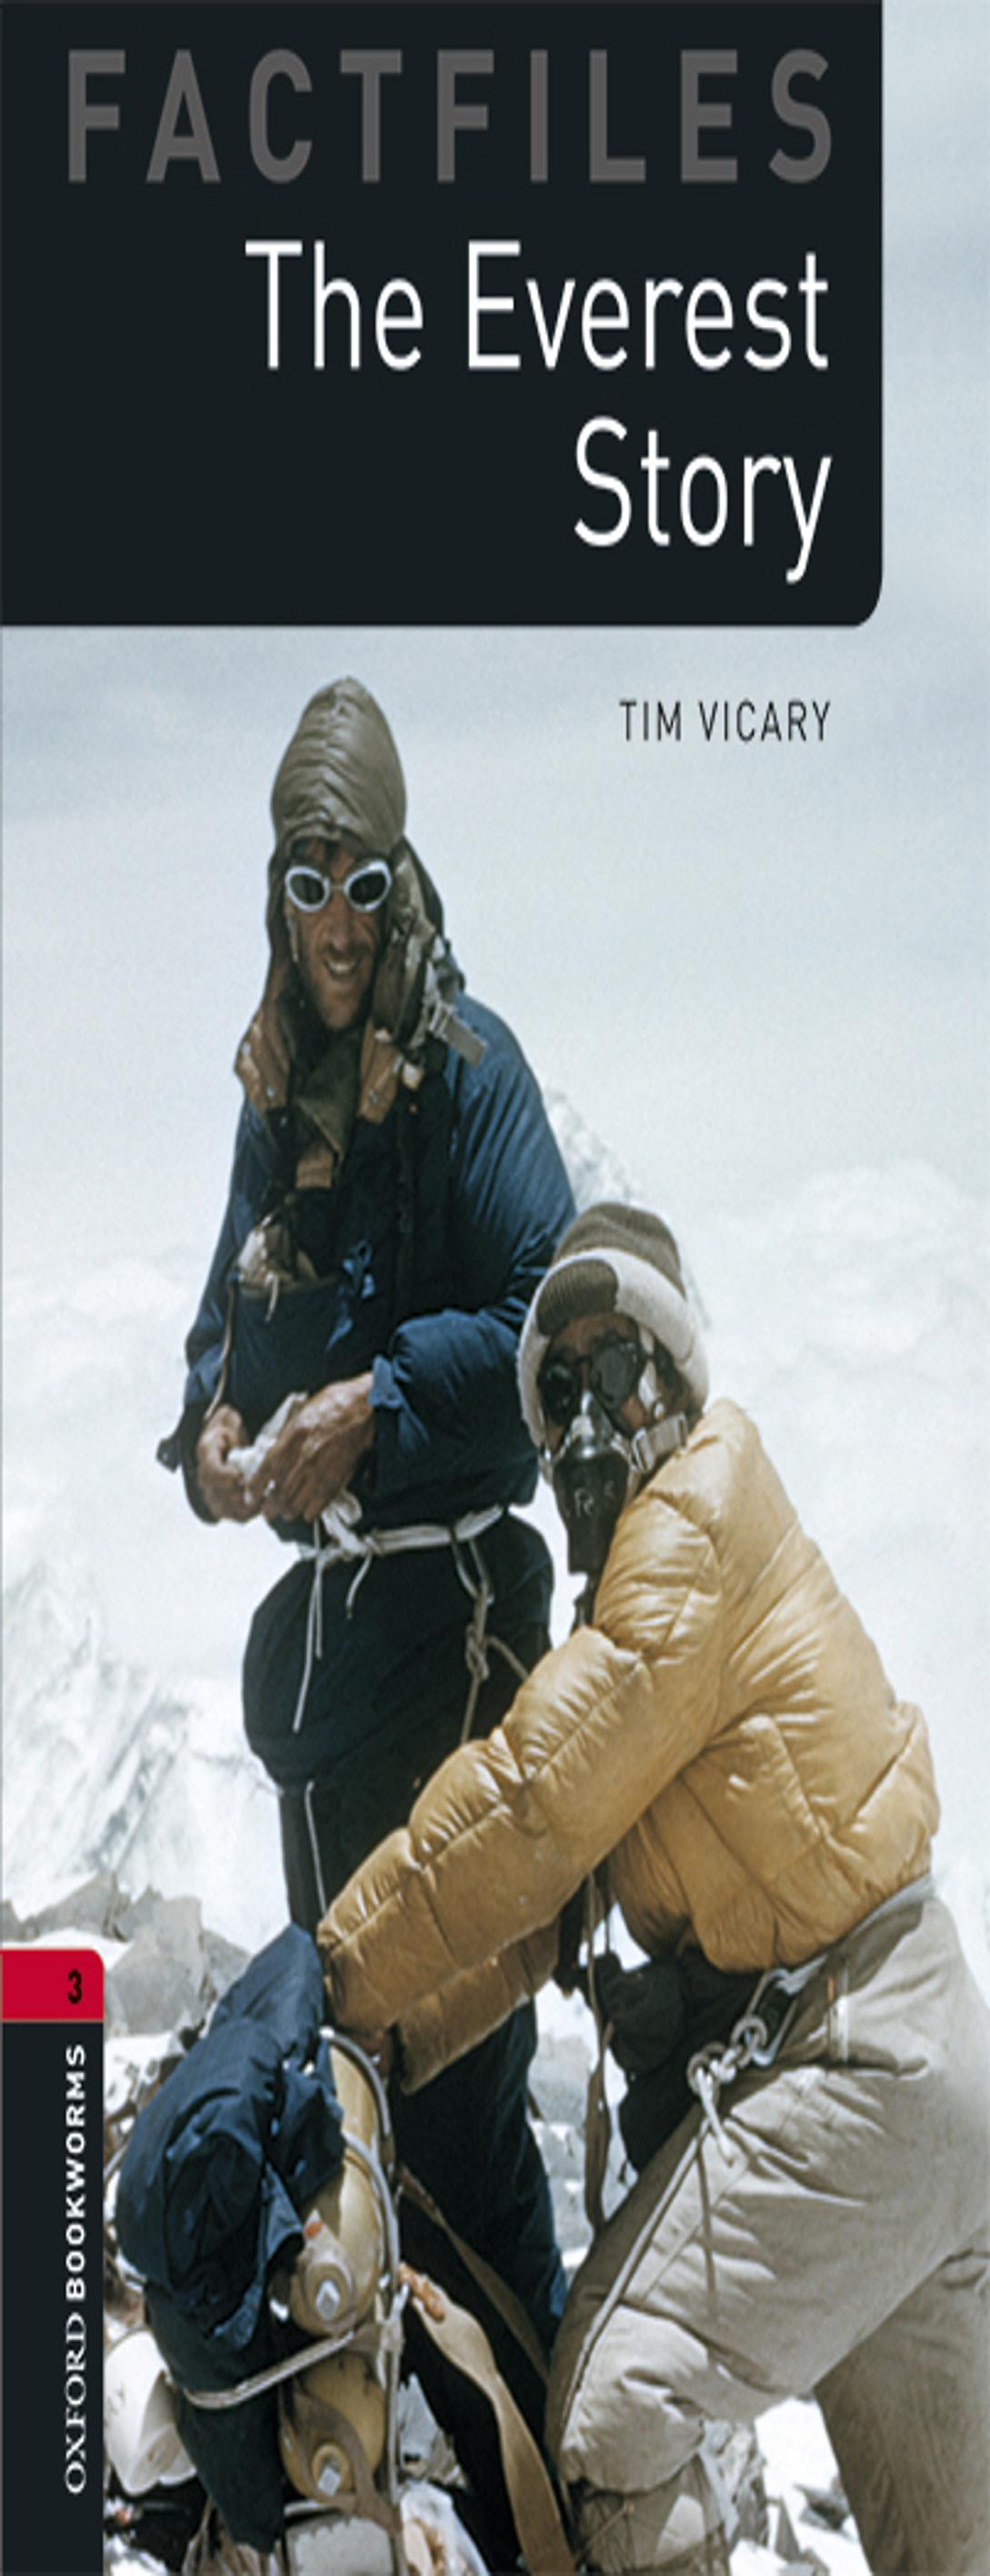 OBF 3 THE EVEREST STORY MP3 PK